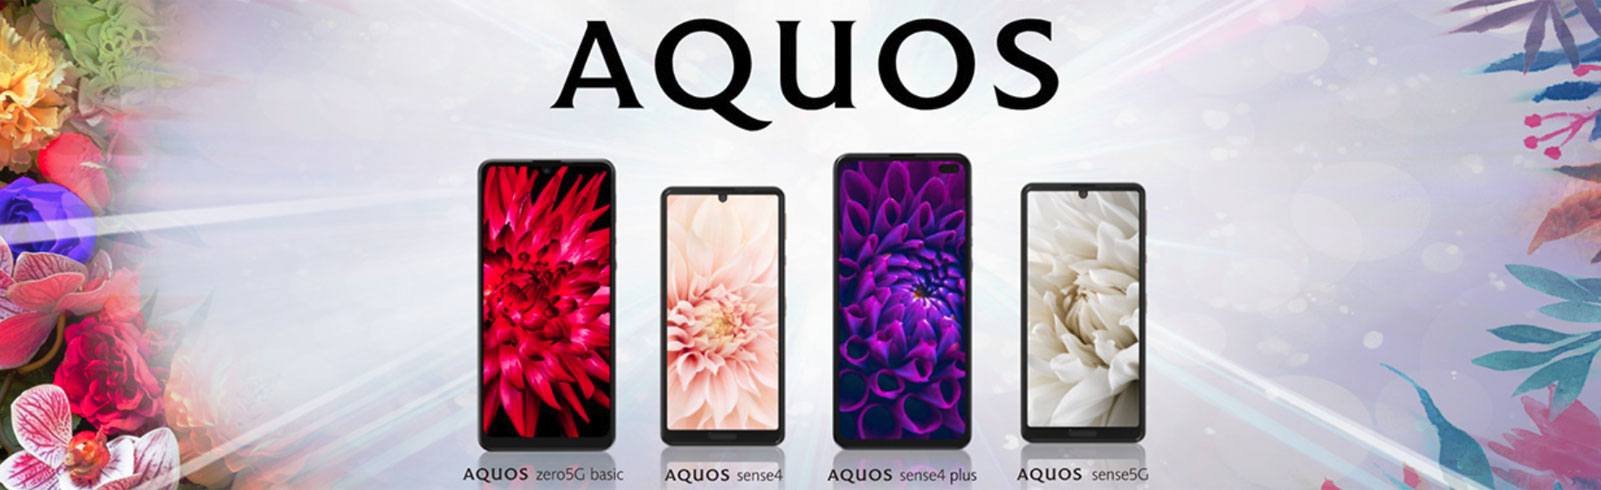 Sharp Aquos Sense4, Aquos Sense4 Plus, Aquos Sense5G, and zero5G Basic go official